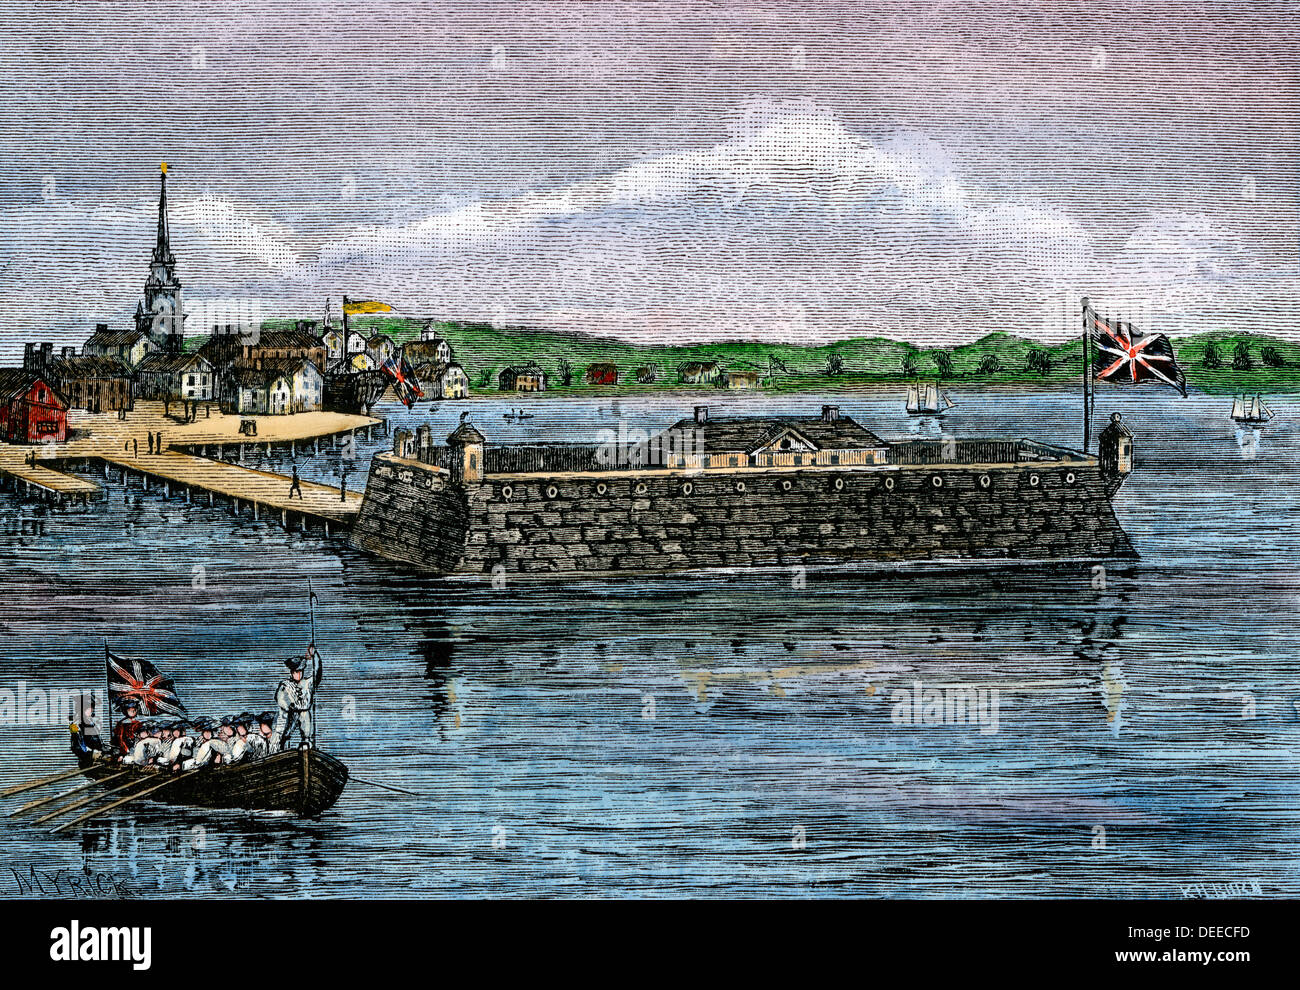 Image result for 1700's charleston harbor picture